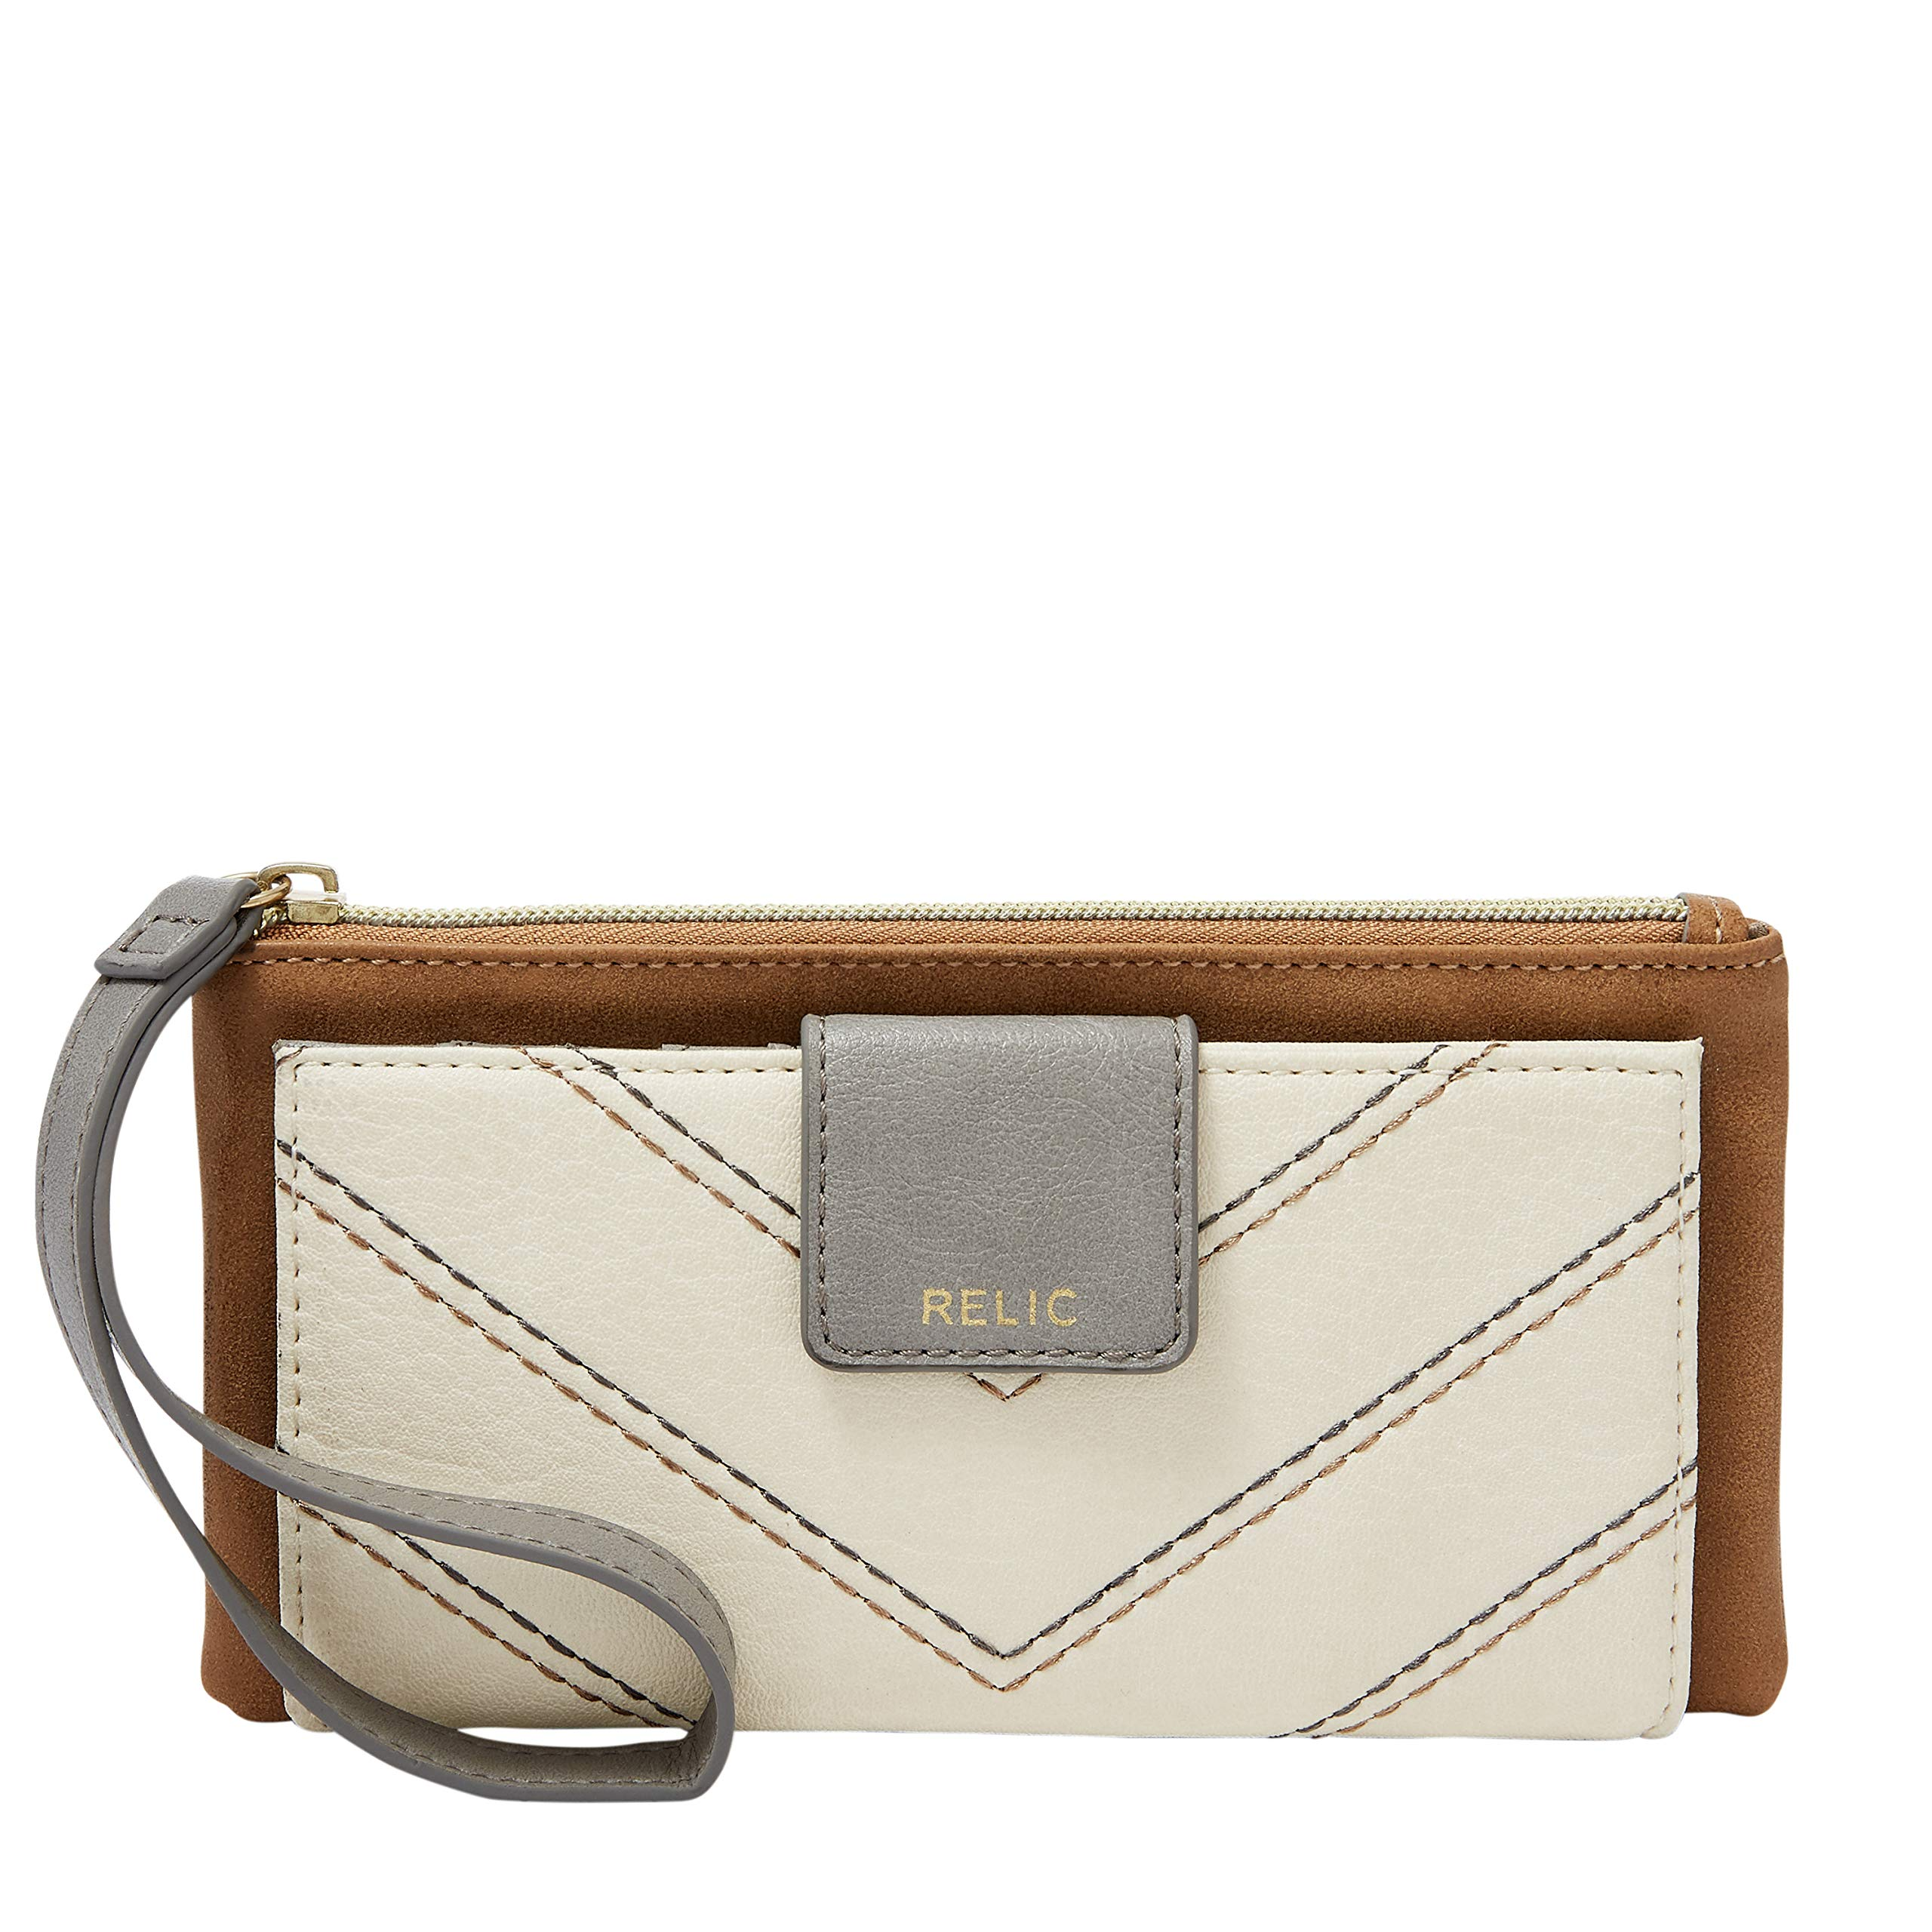 Relic by Fossil Cameron Wristlet Checkbook Neutral Multi, PVC by Relic by Fossil